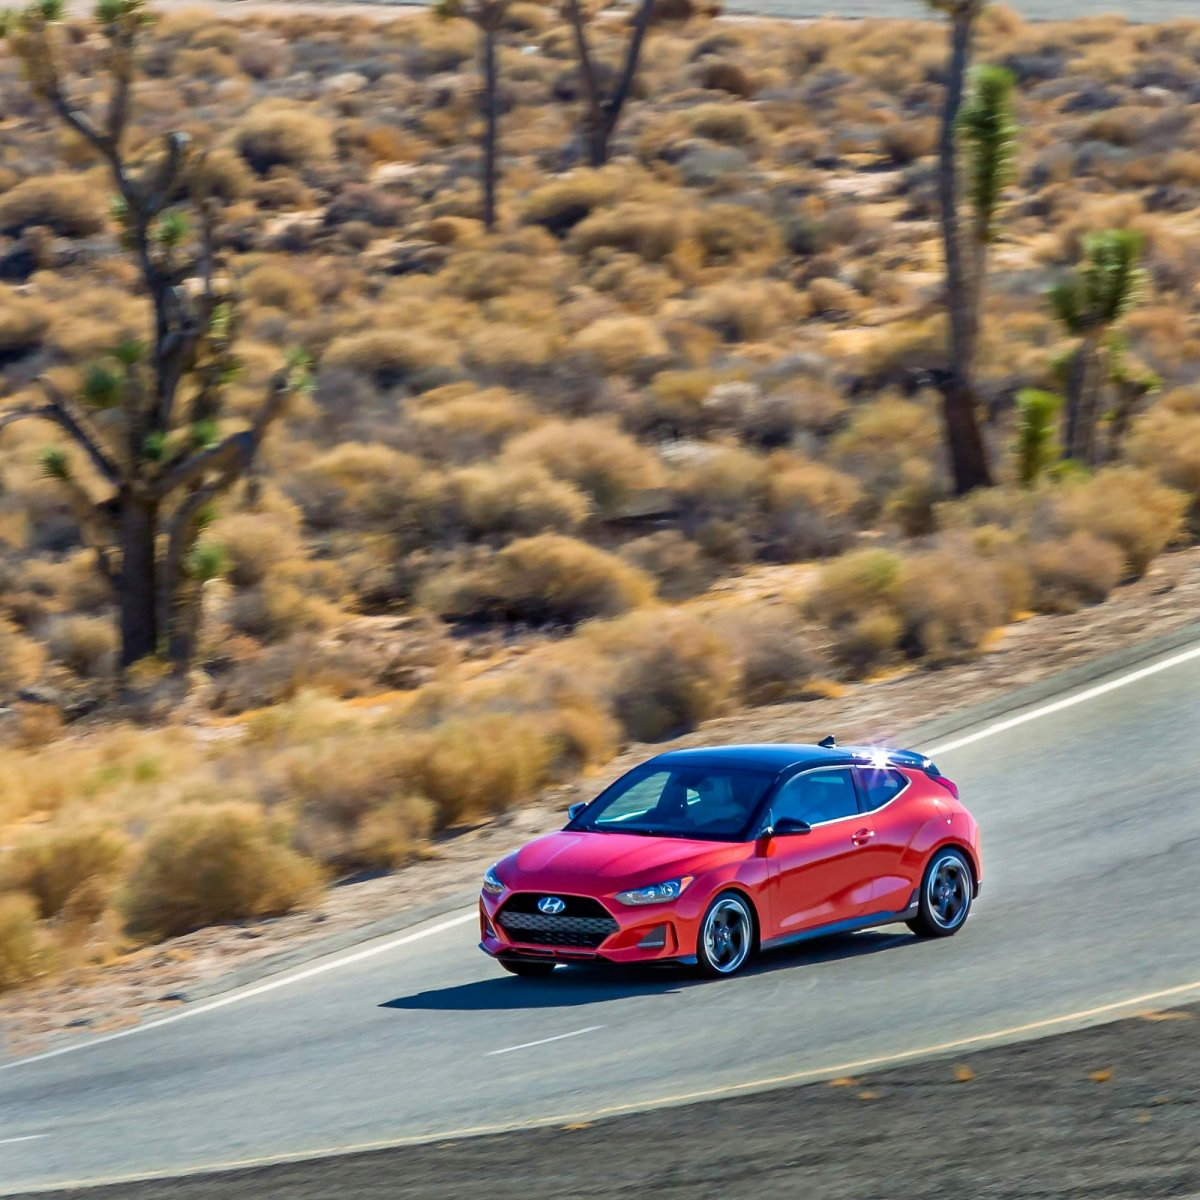 2019 Hyundai Veloster N: All-new 2019 Hyundai Veloster Debuts In Detroit, Adds Hot